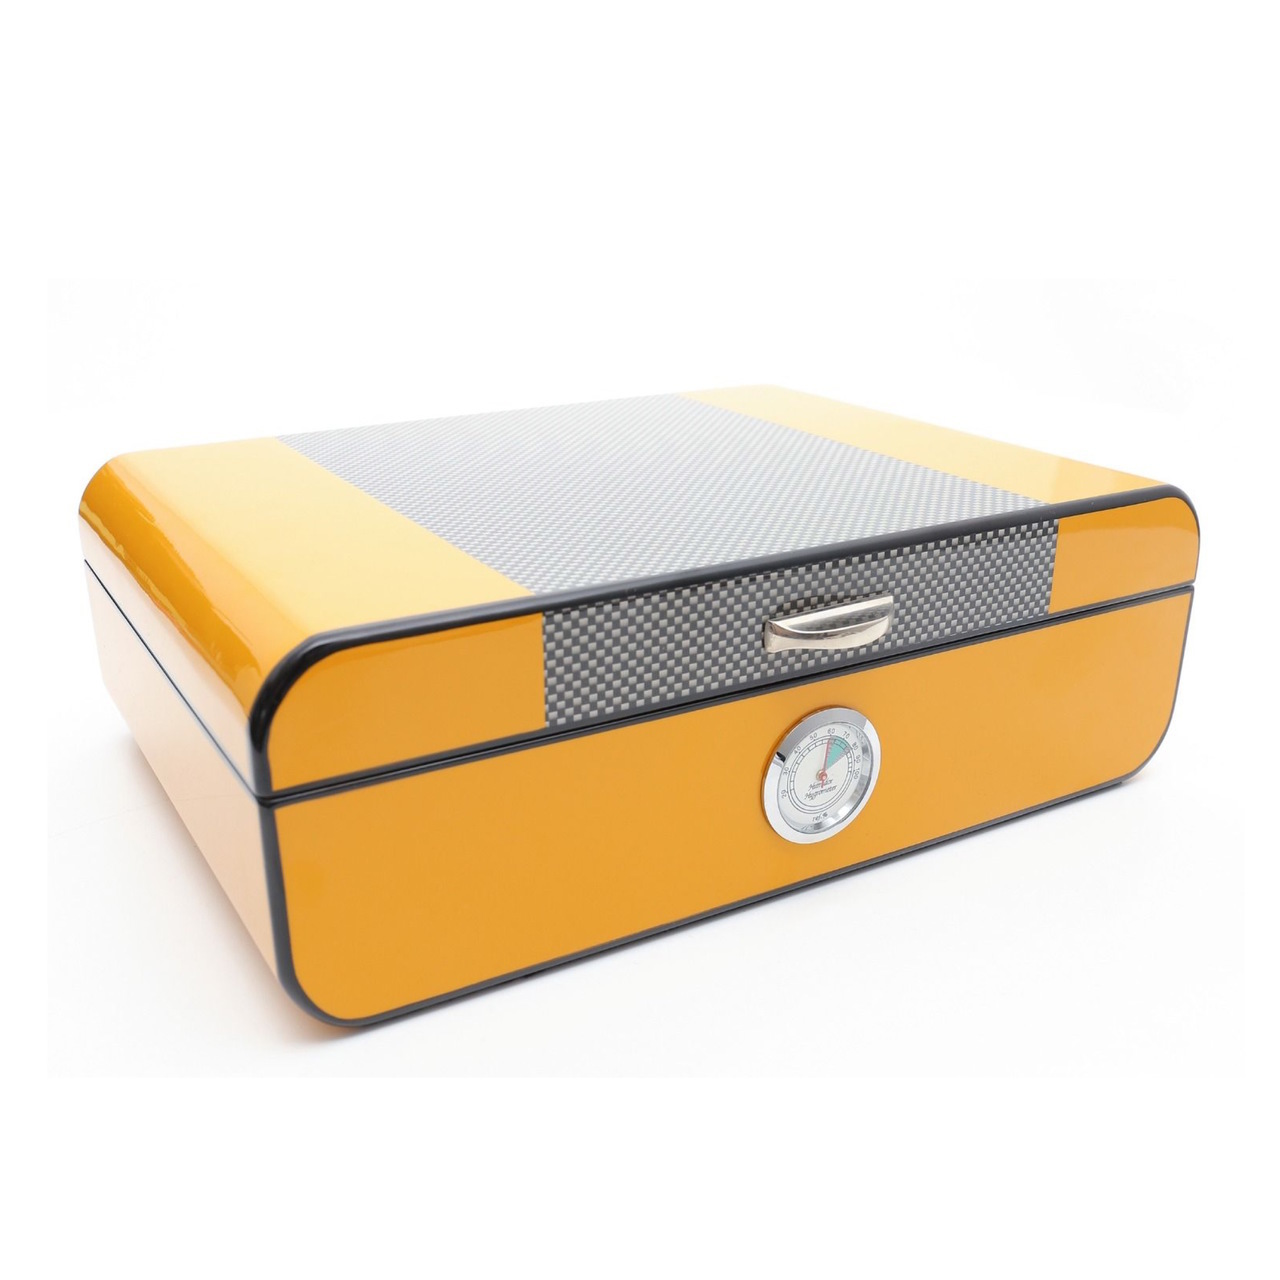 savinelli_high_lacquered_yellow_and_carbon_fibre_humidor_cigarmonkeys_com_luxury_humidors_3.jpg